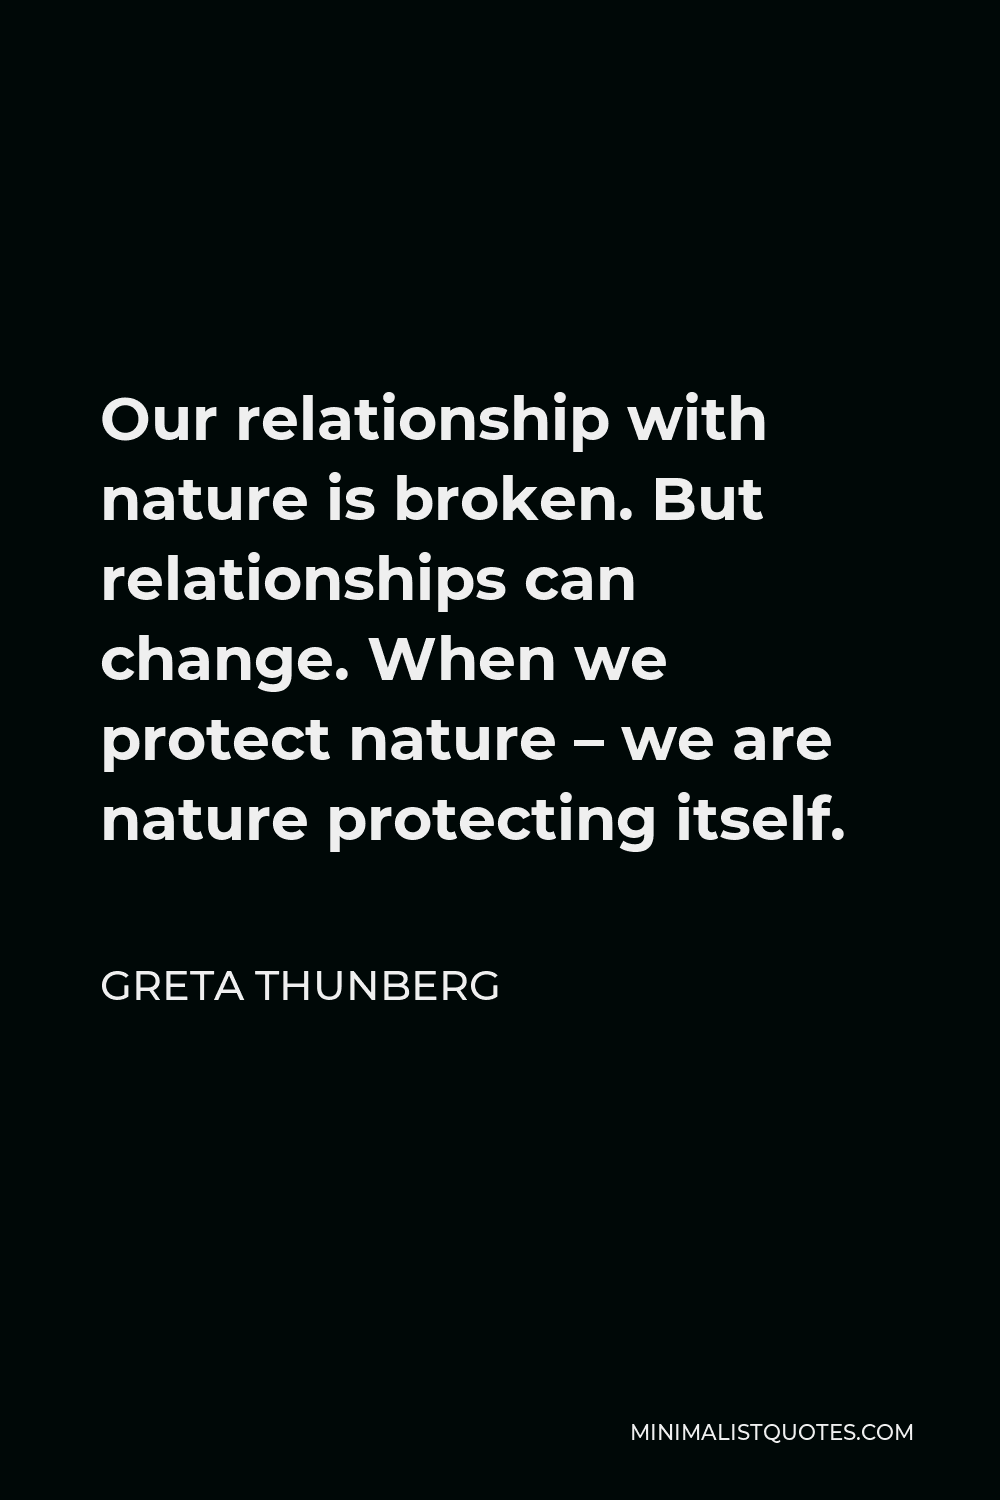 Greta Thunberg Quote - Our relationship with nature is broken. But relationships can change. When we protect nature – we are nature protecting itself.